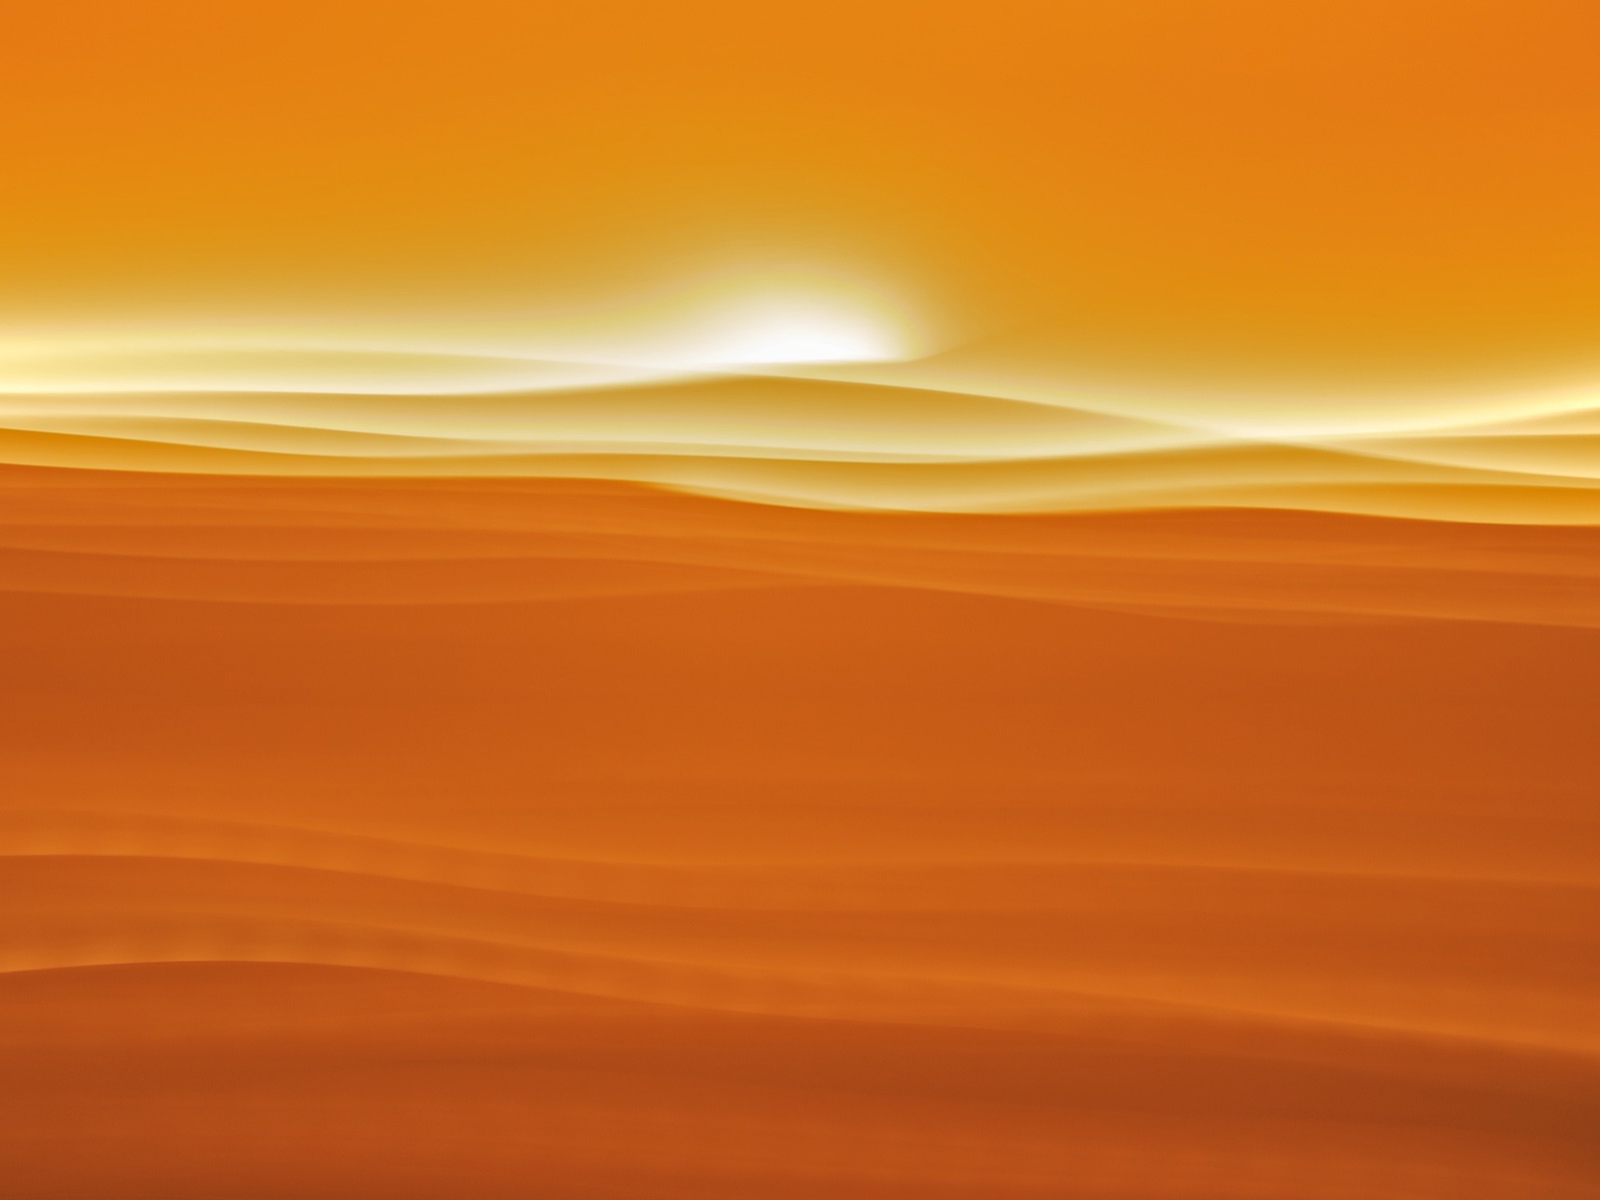 Desert Sand Wallpaper